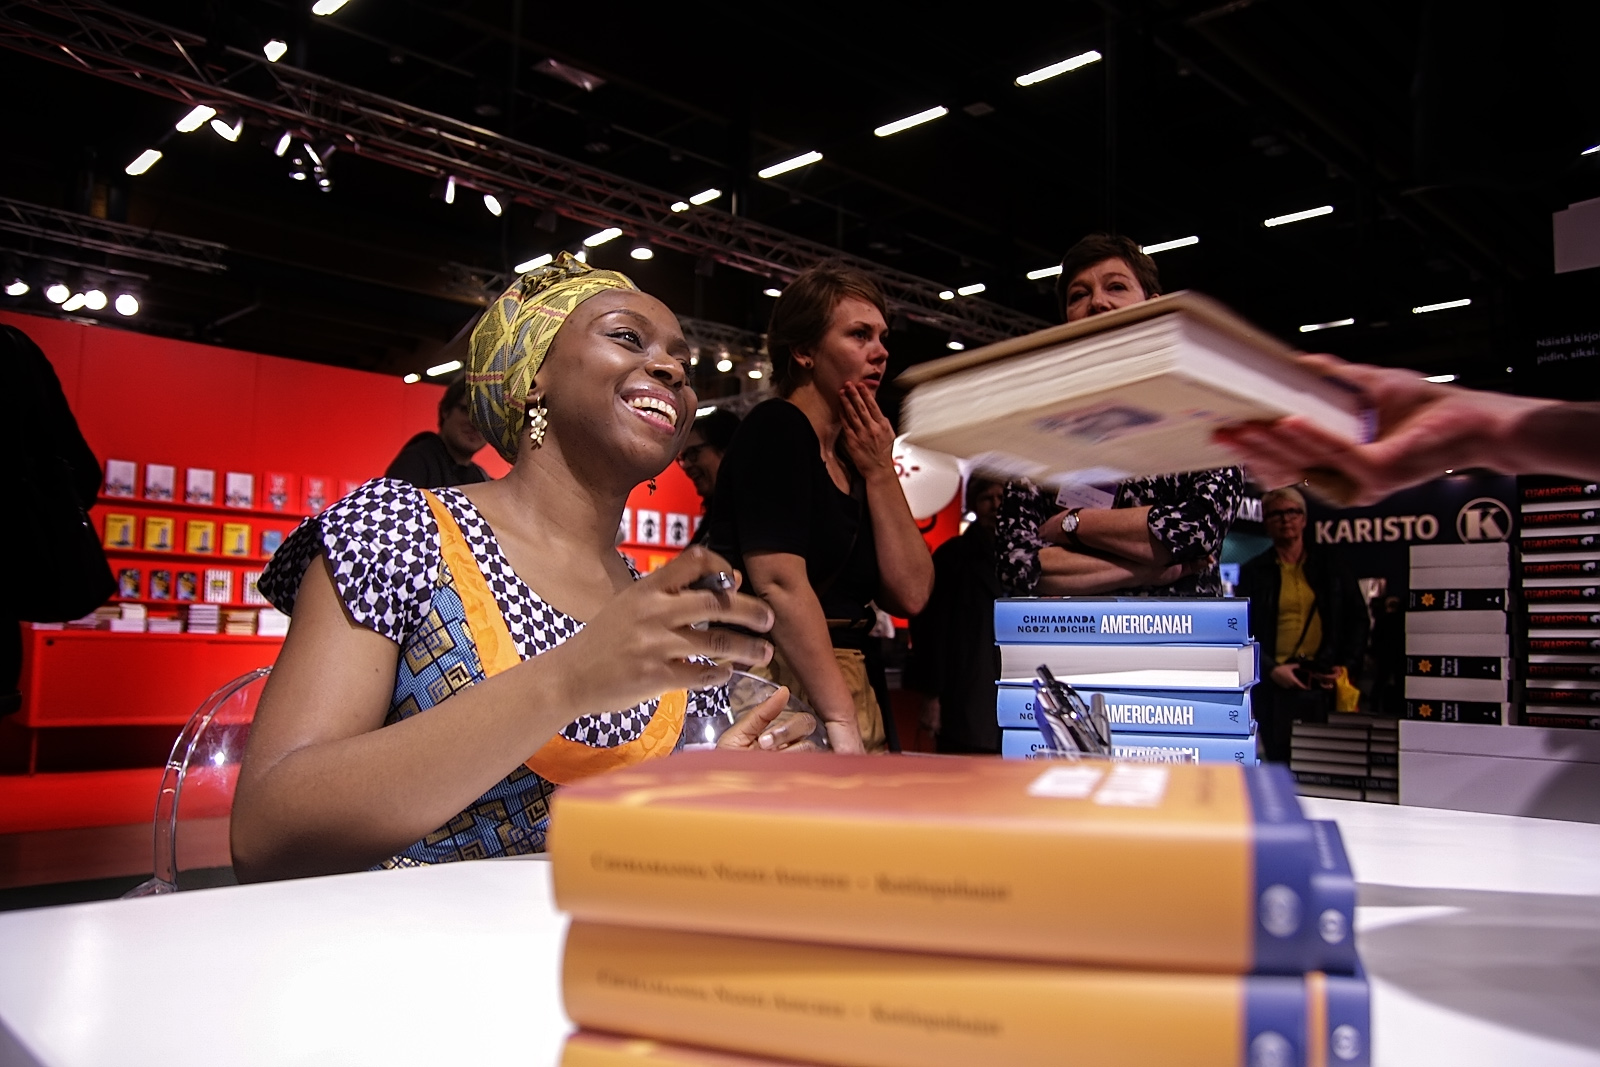 Chimamanda Ngozi Adichie, the Nigerian novelist, visiting the Helsinki Book Fair on October 24, 2013. Picture: Tony Öhberg for Finland Today